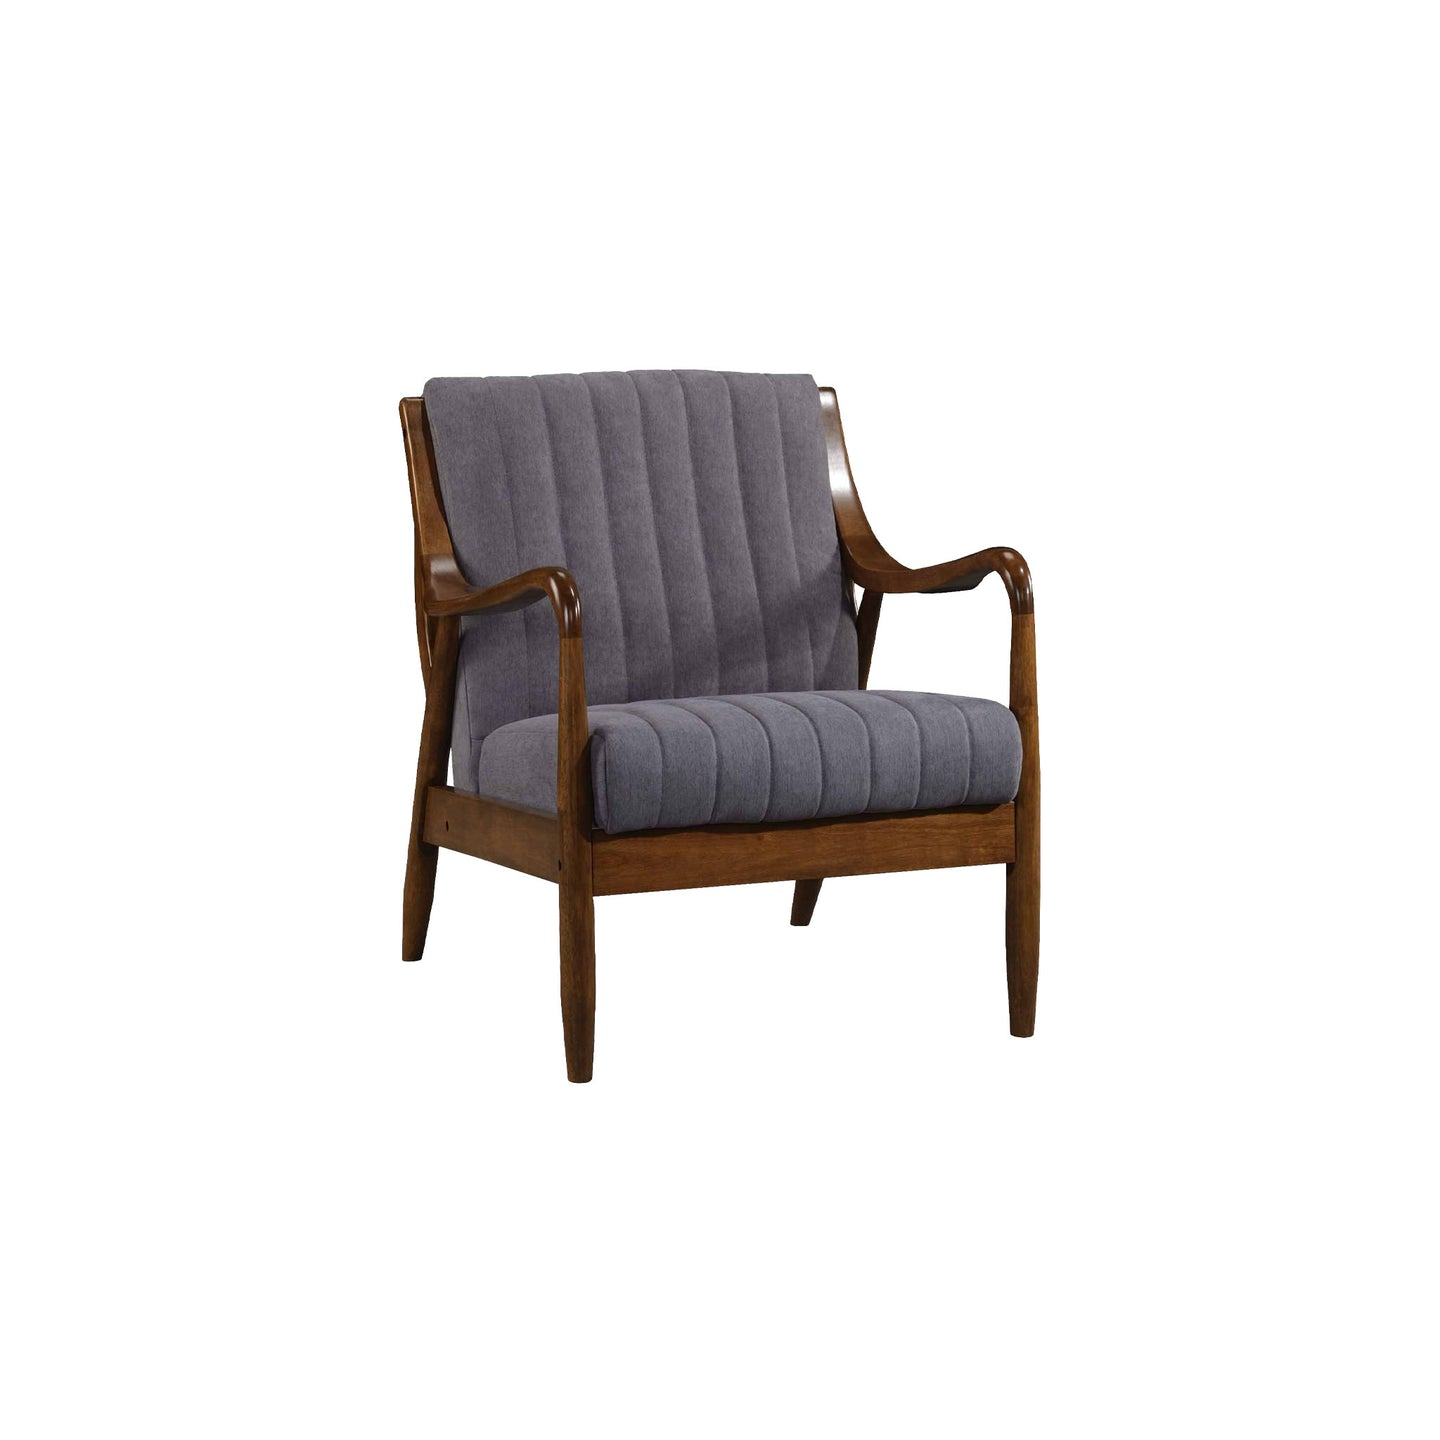 Marianna Mid Century Modern Gray Accent Chair